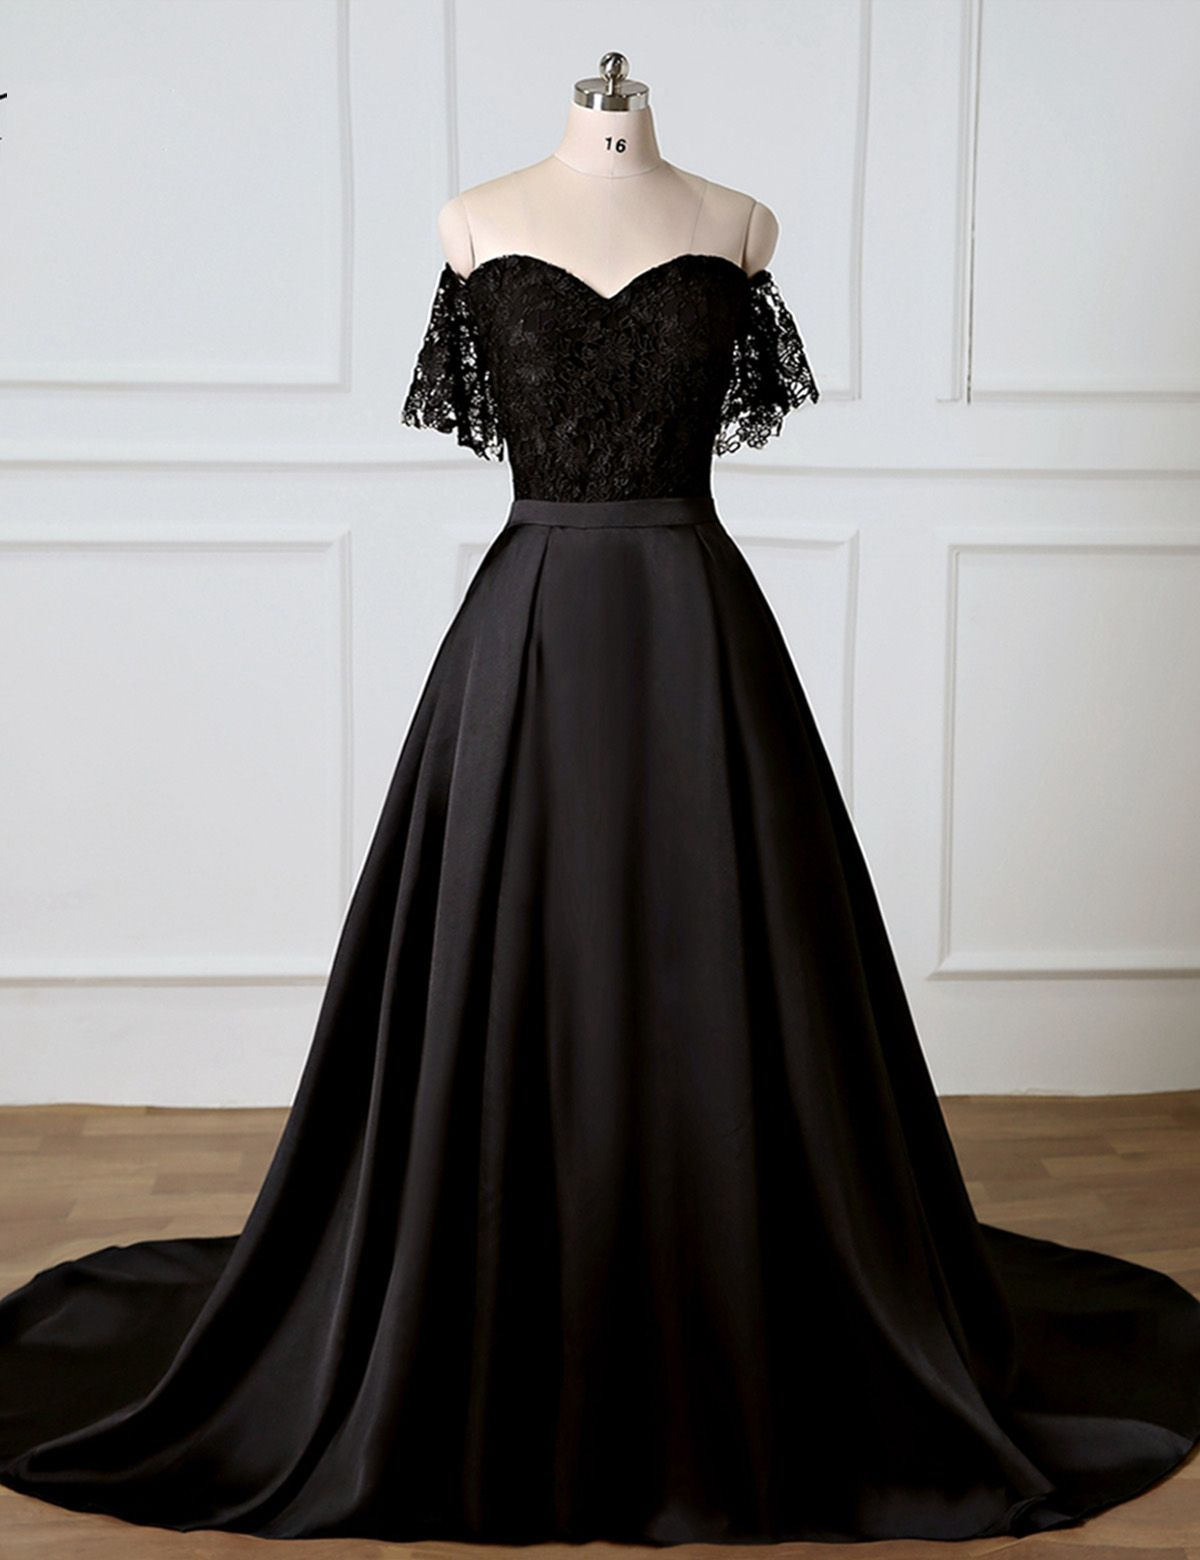 aabe07cb611 Sweetheart Black Lace Off Shoulder Long Prom Dress With Removable Skirt   promdress  prom  dress